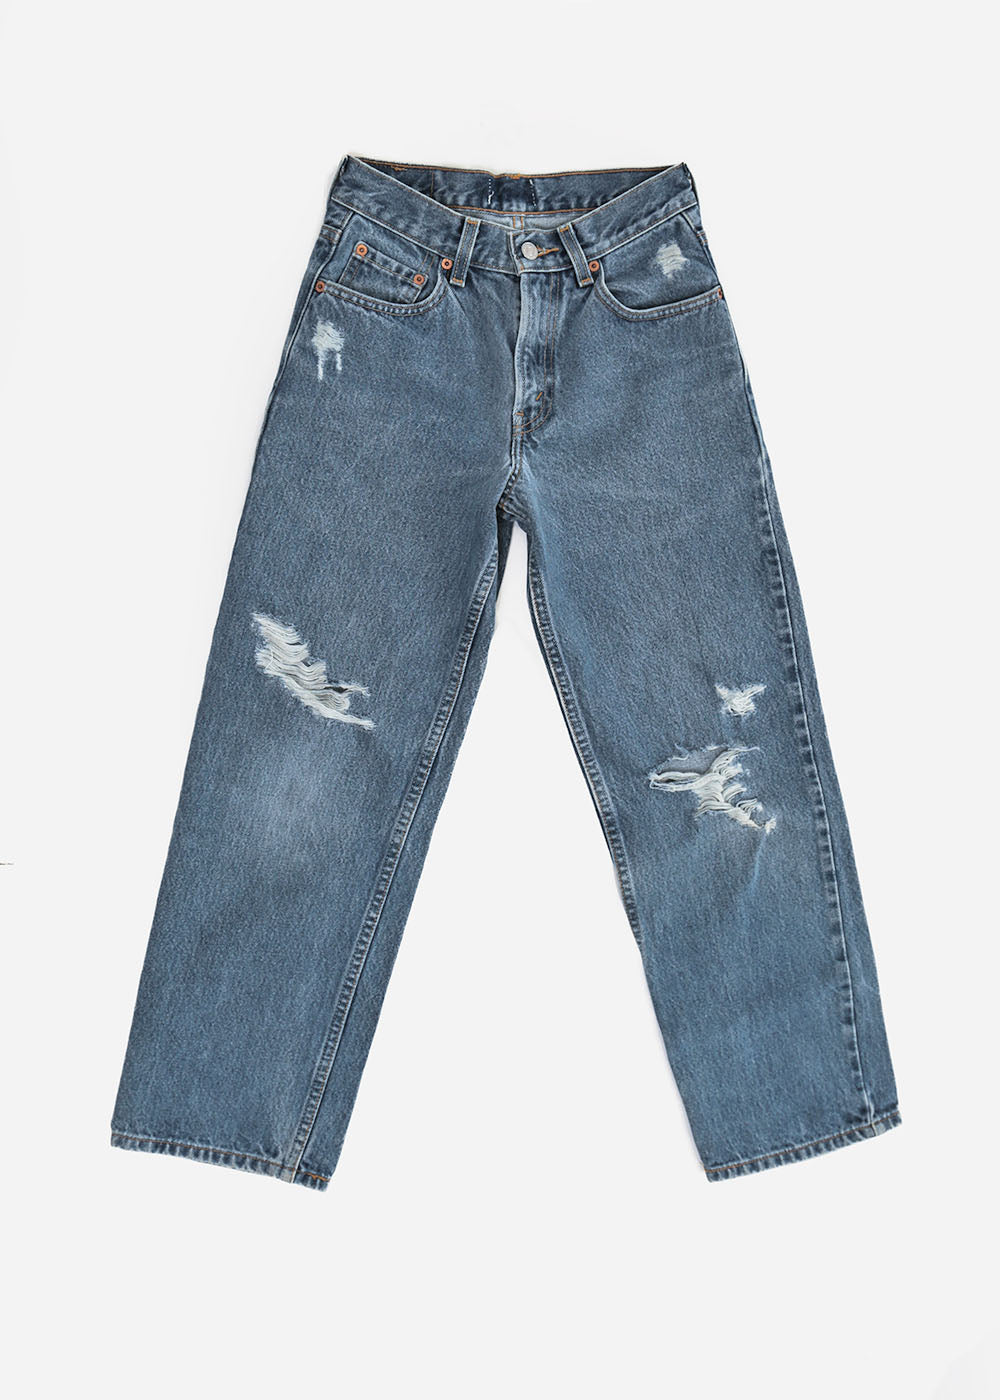 Denim Refinery Vintage Levi's 550 — Shop sustainable fashion and slow fashion at New Classics Studios